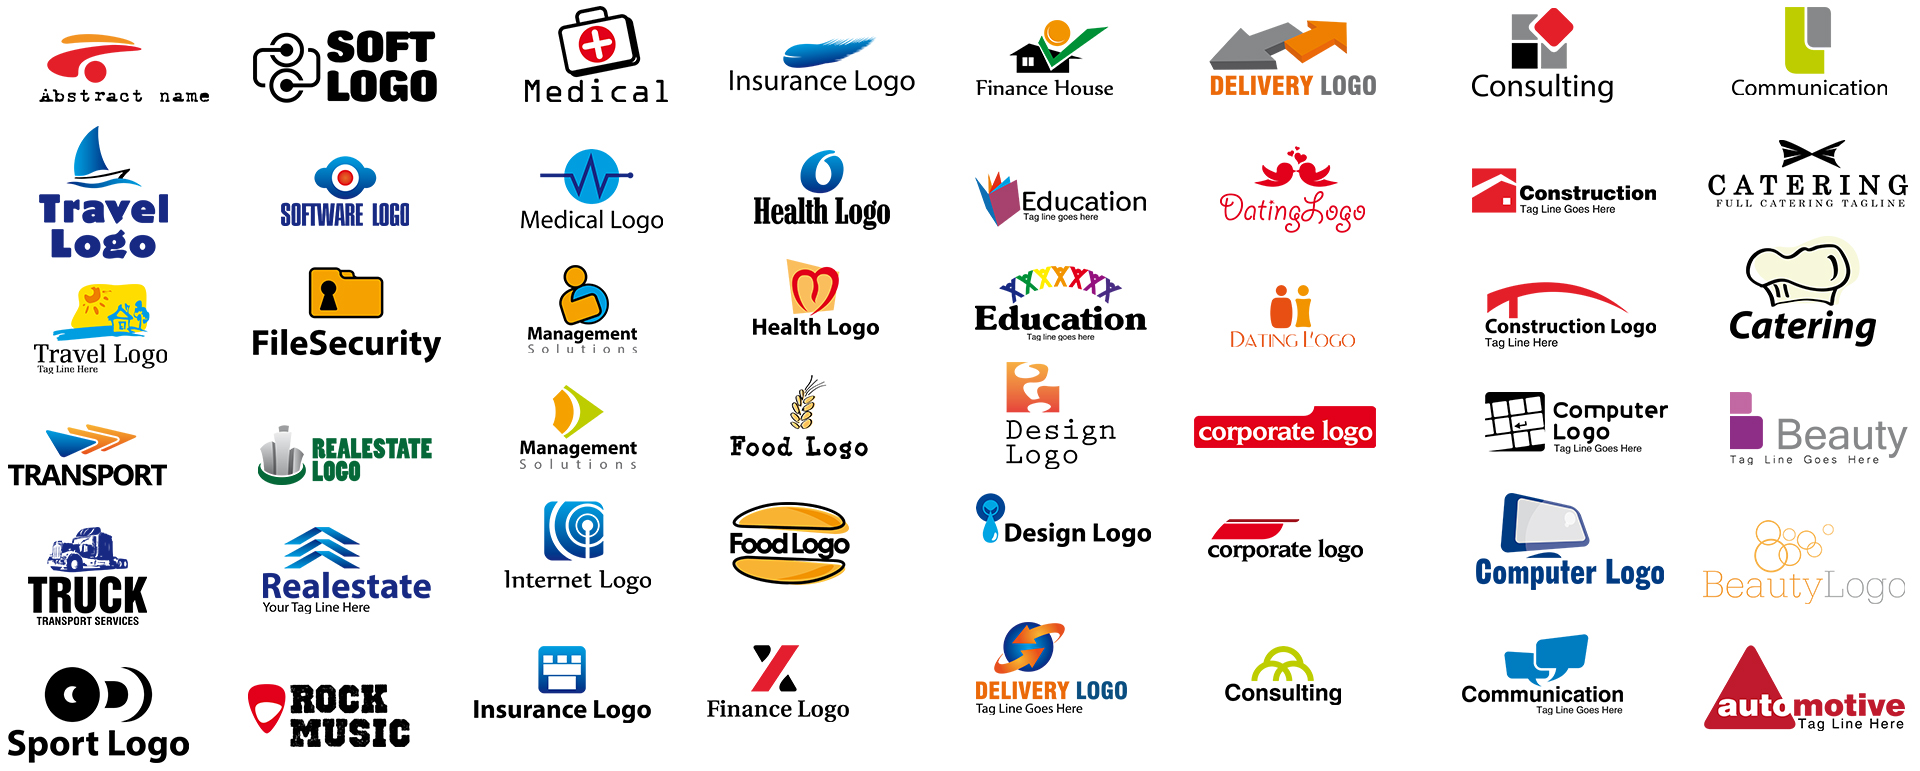 Search as well 7C 7Cemerald Hvac   7Cimages 7CLOGOS 7Cepa logo furthermore Video Game Tattoos For Men furthermore Funny Handyman Business Cards 240842875407699397 besides Black White And Sepia Design Inspiration. on retro plumbing logos